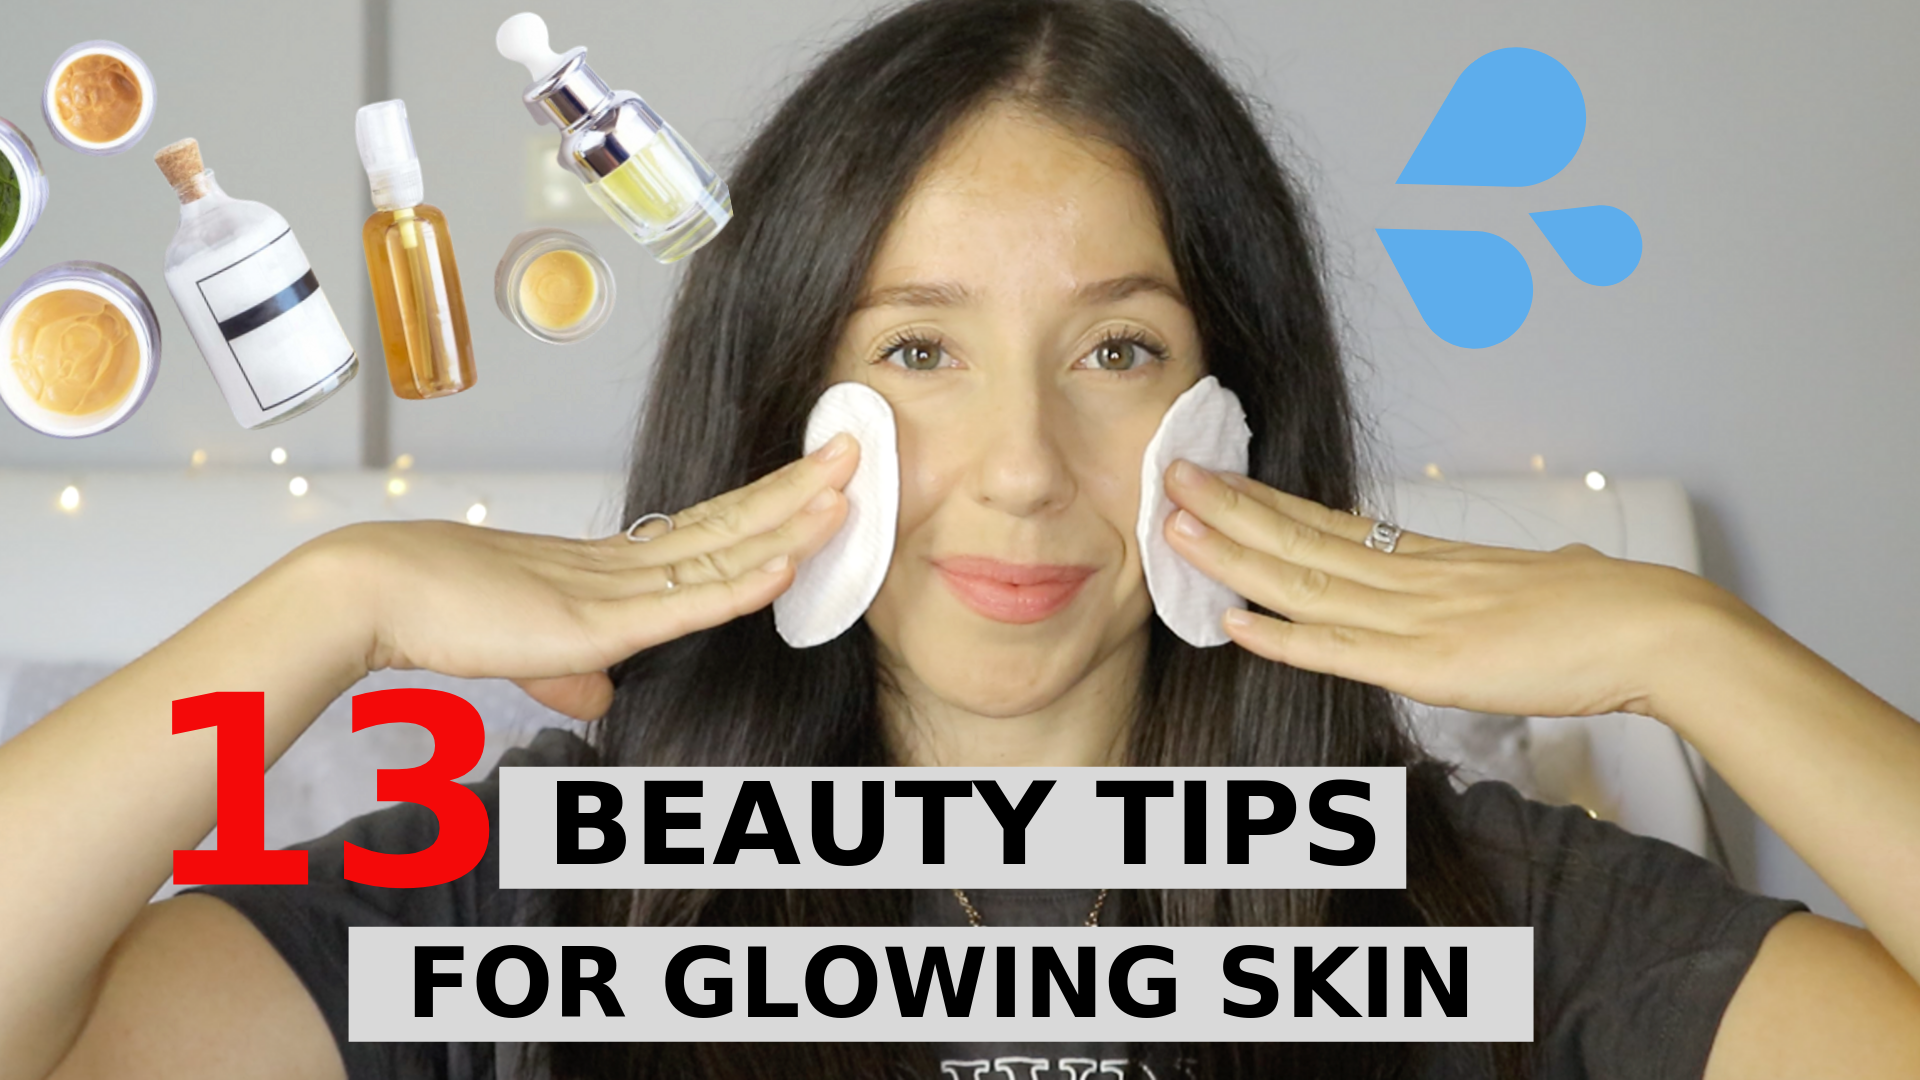 12 BEAUTY TIPS FOR GLOWING SKIN – Daily Beauty Tips